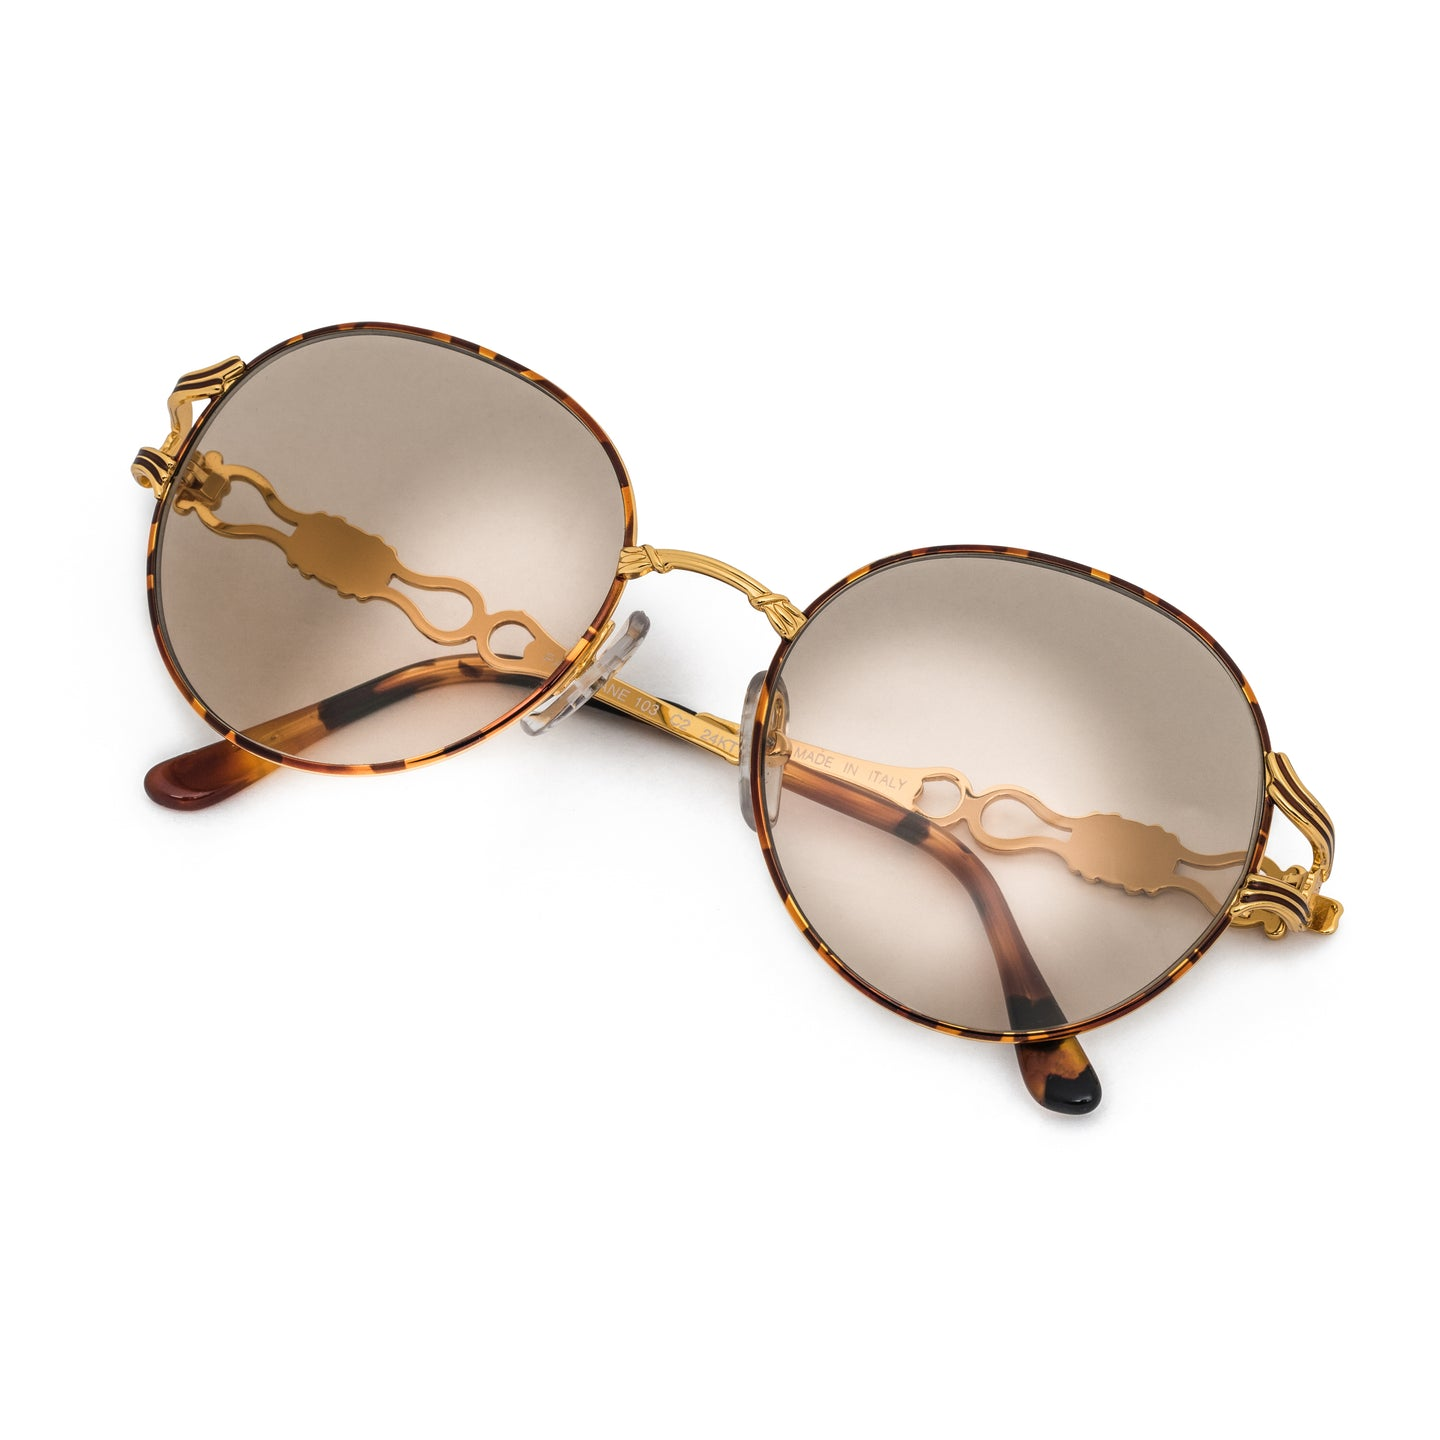 Vintage Hilton Parklane 103 C2 (Gold Dust) Thumbnail, Hilton , glasses frames, eyeglasses online, eyeglass frames, mens glasses, womens glasses, buy glasses online, designer eyeglasses, vintage sunglasses, retro sunglasses, vintage glasses, sunglass, eyeglass, glasses, lens, vintage frames company, vf